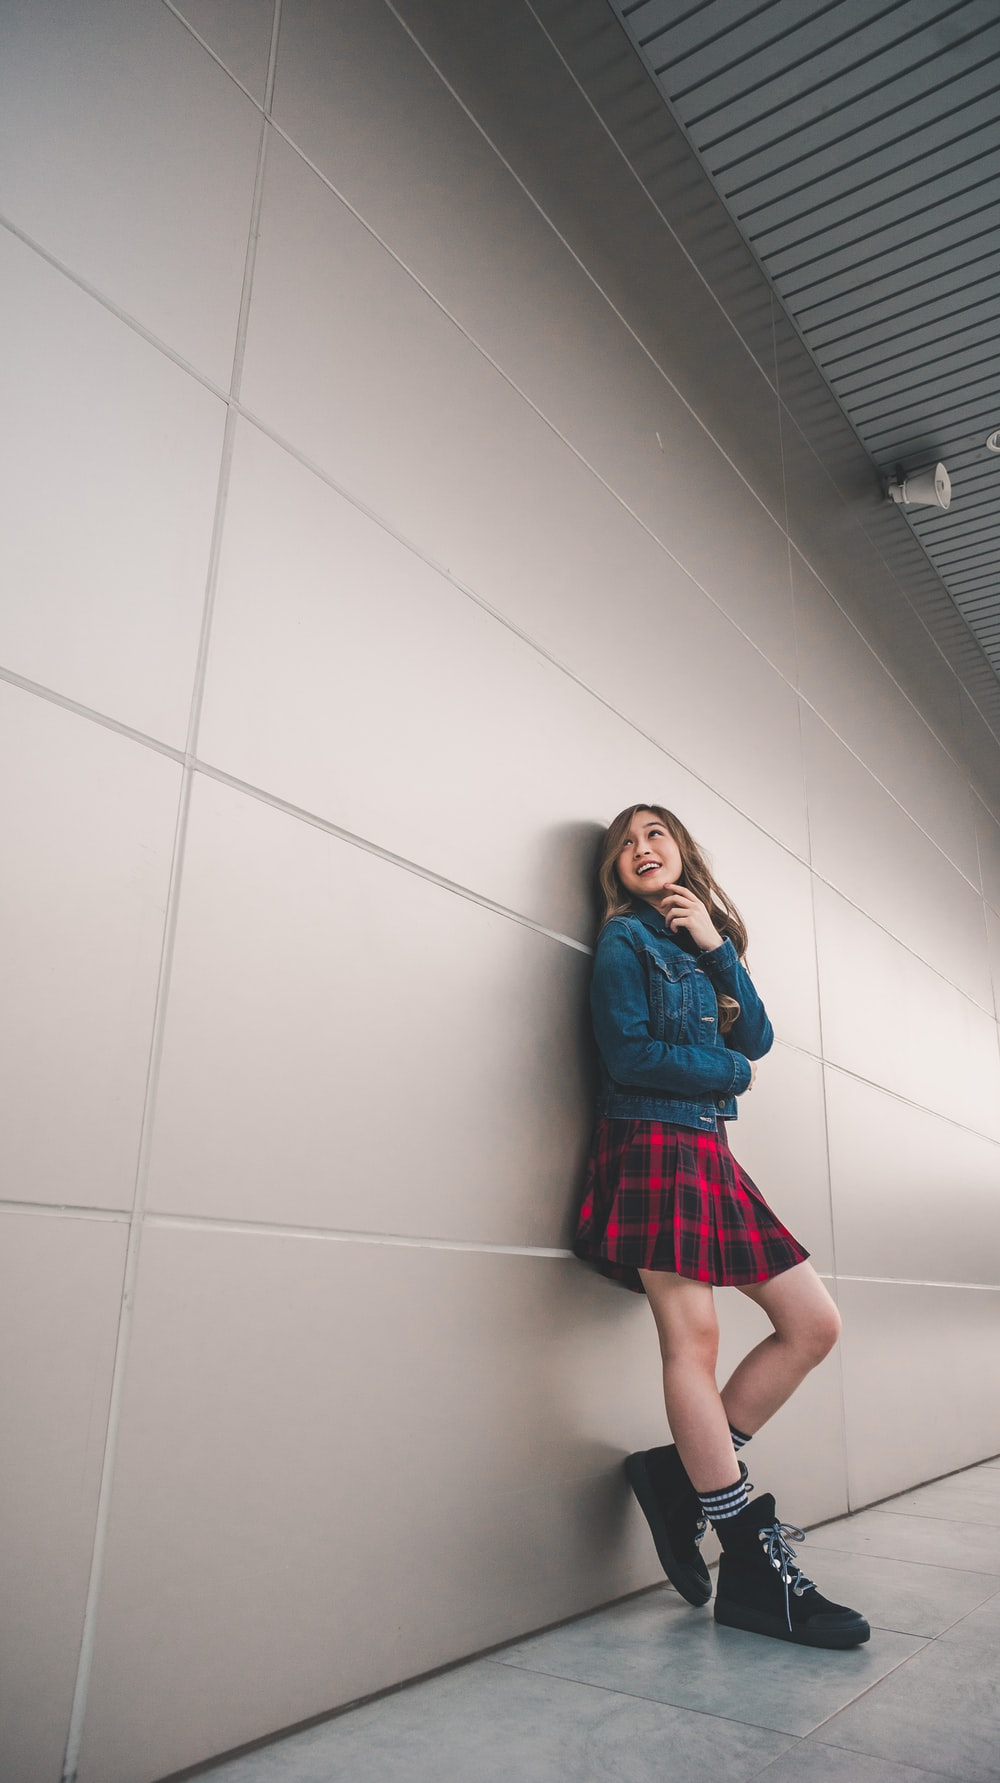 girl in blue jacket and red and black mini skirt leaning on wall